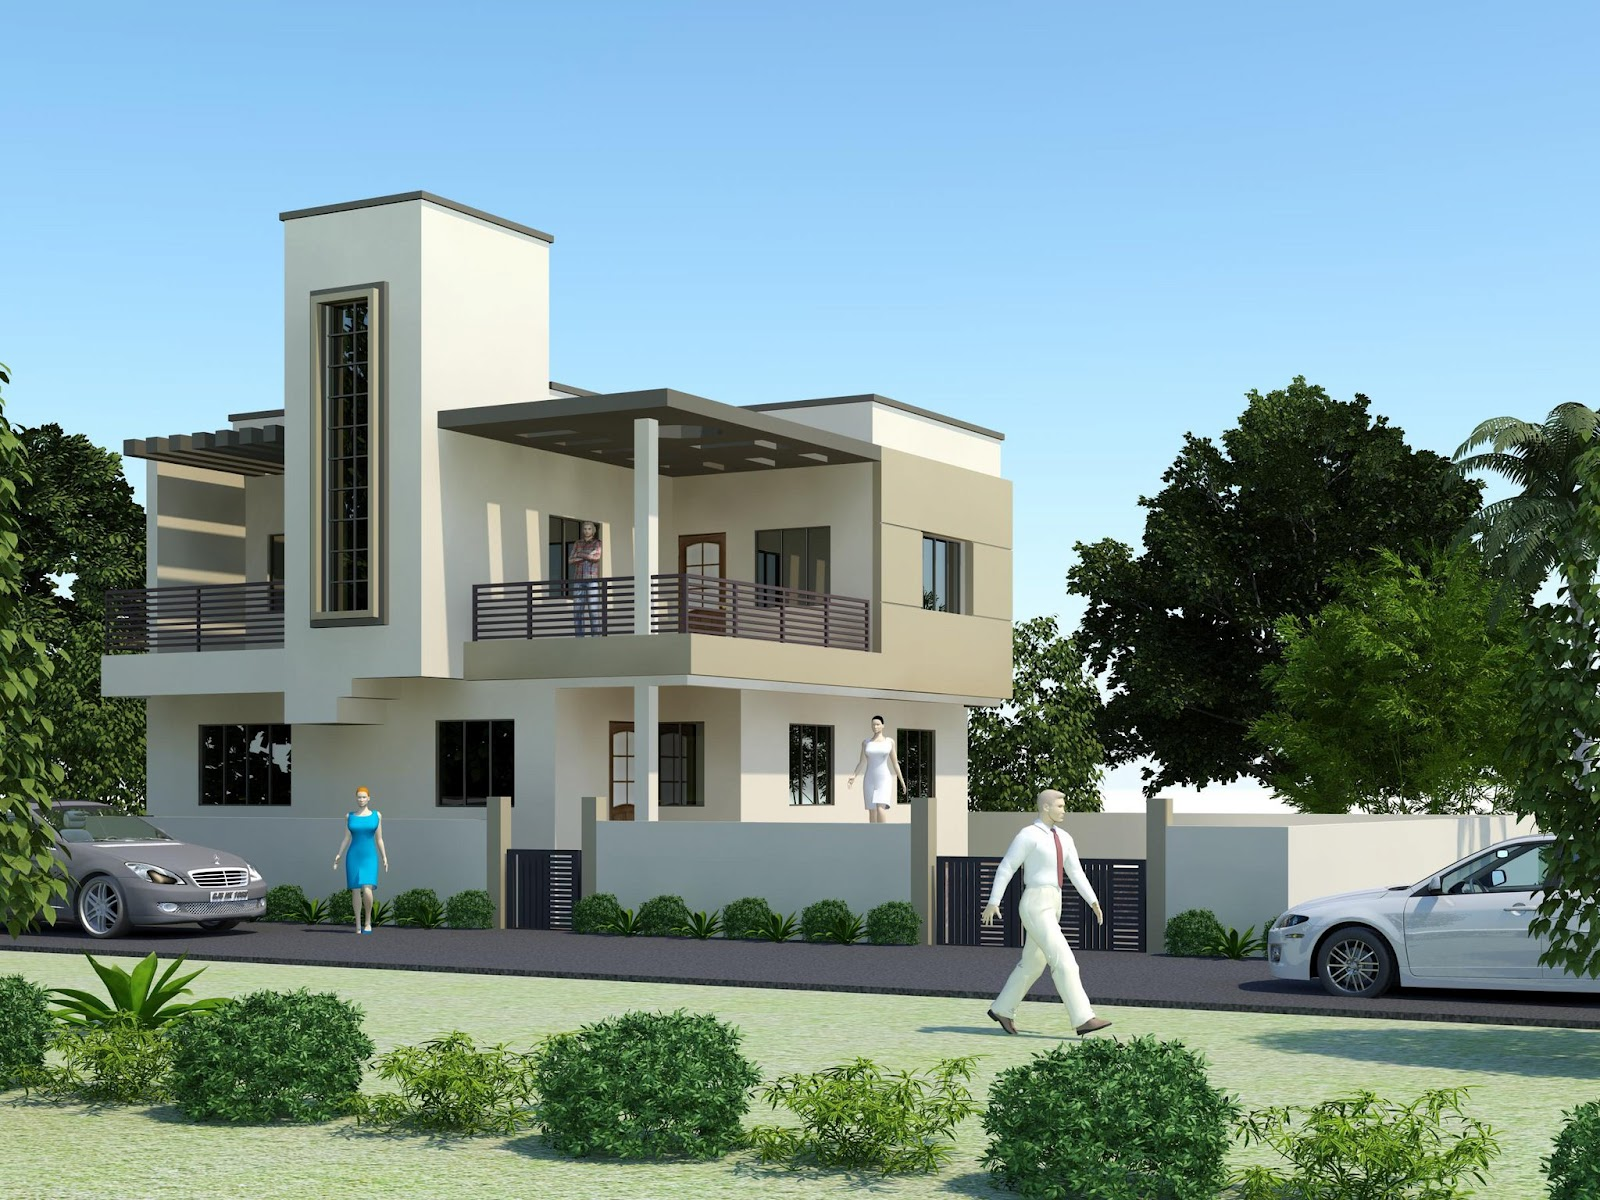 New home designs latest modern homes exterior designs Indian home exterior design photos